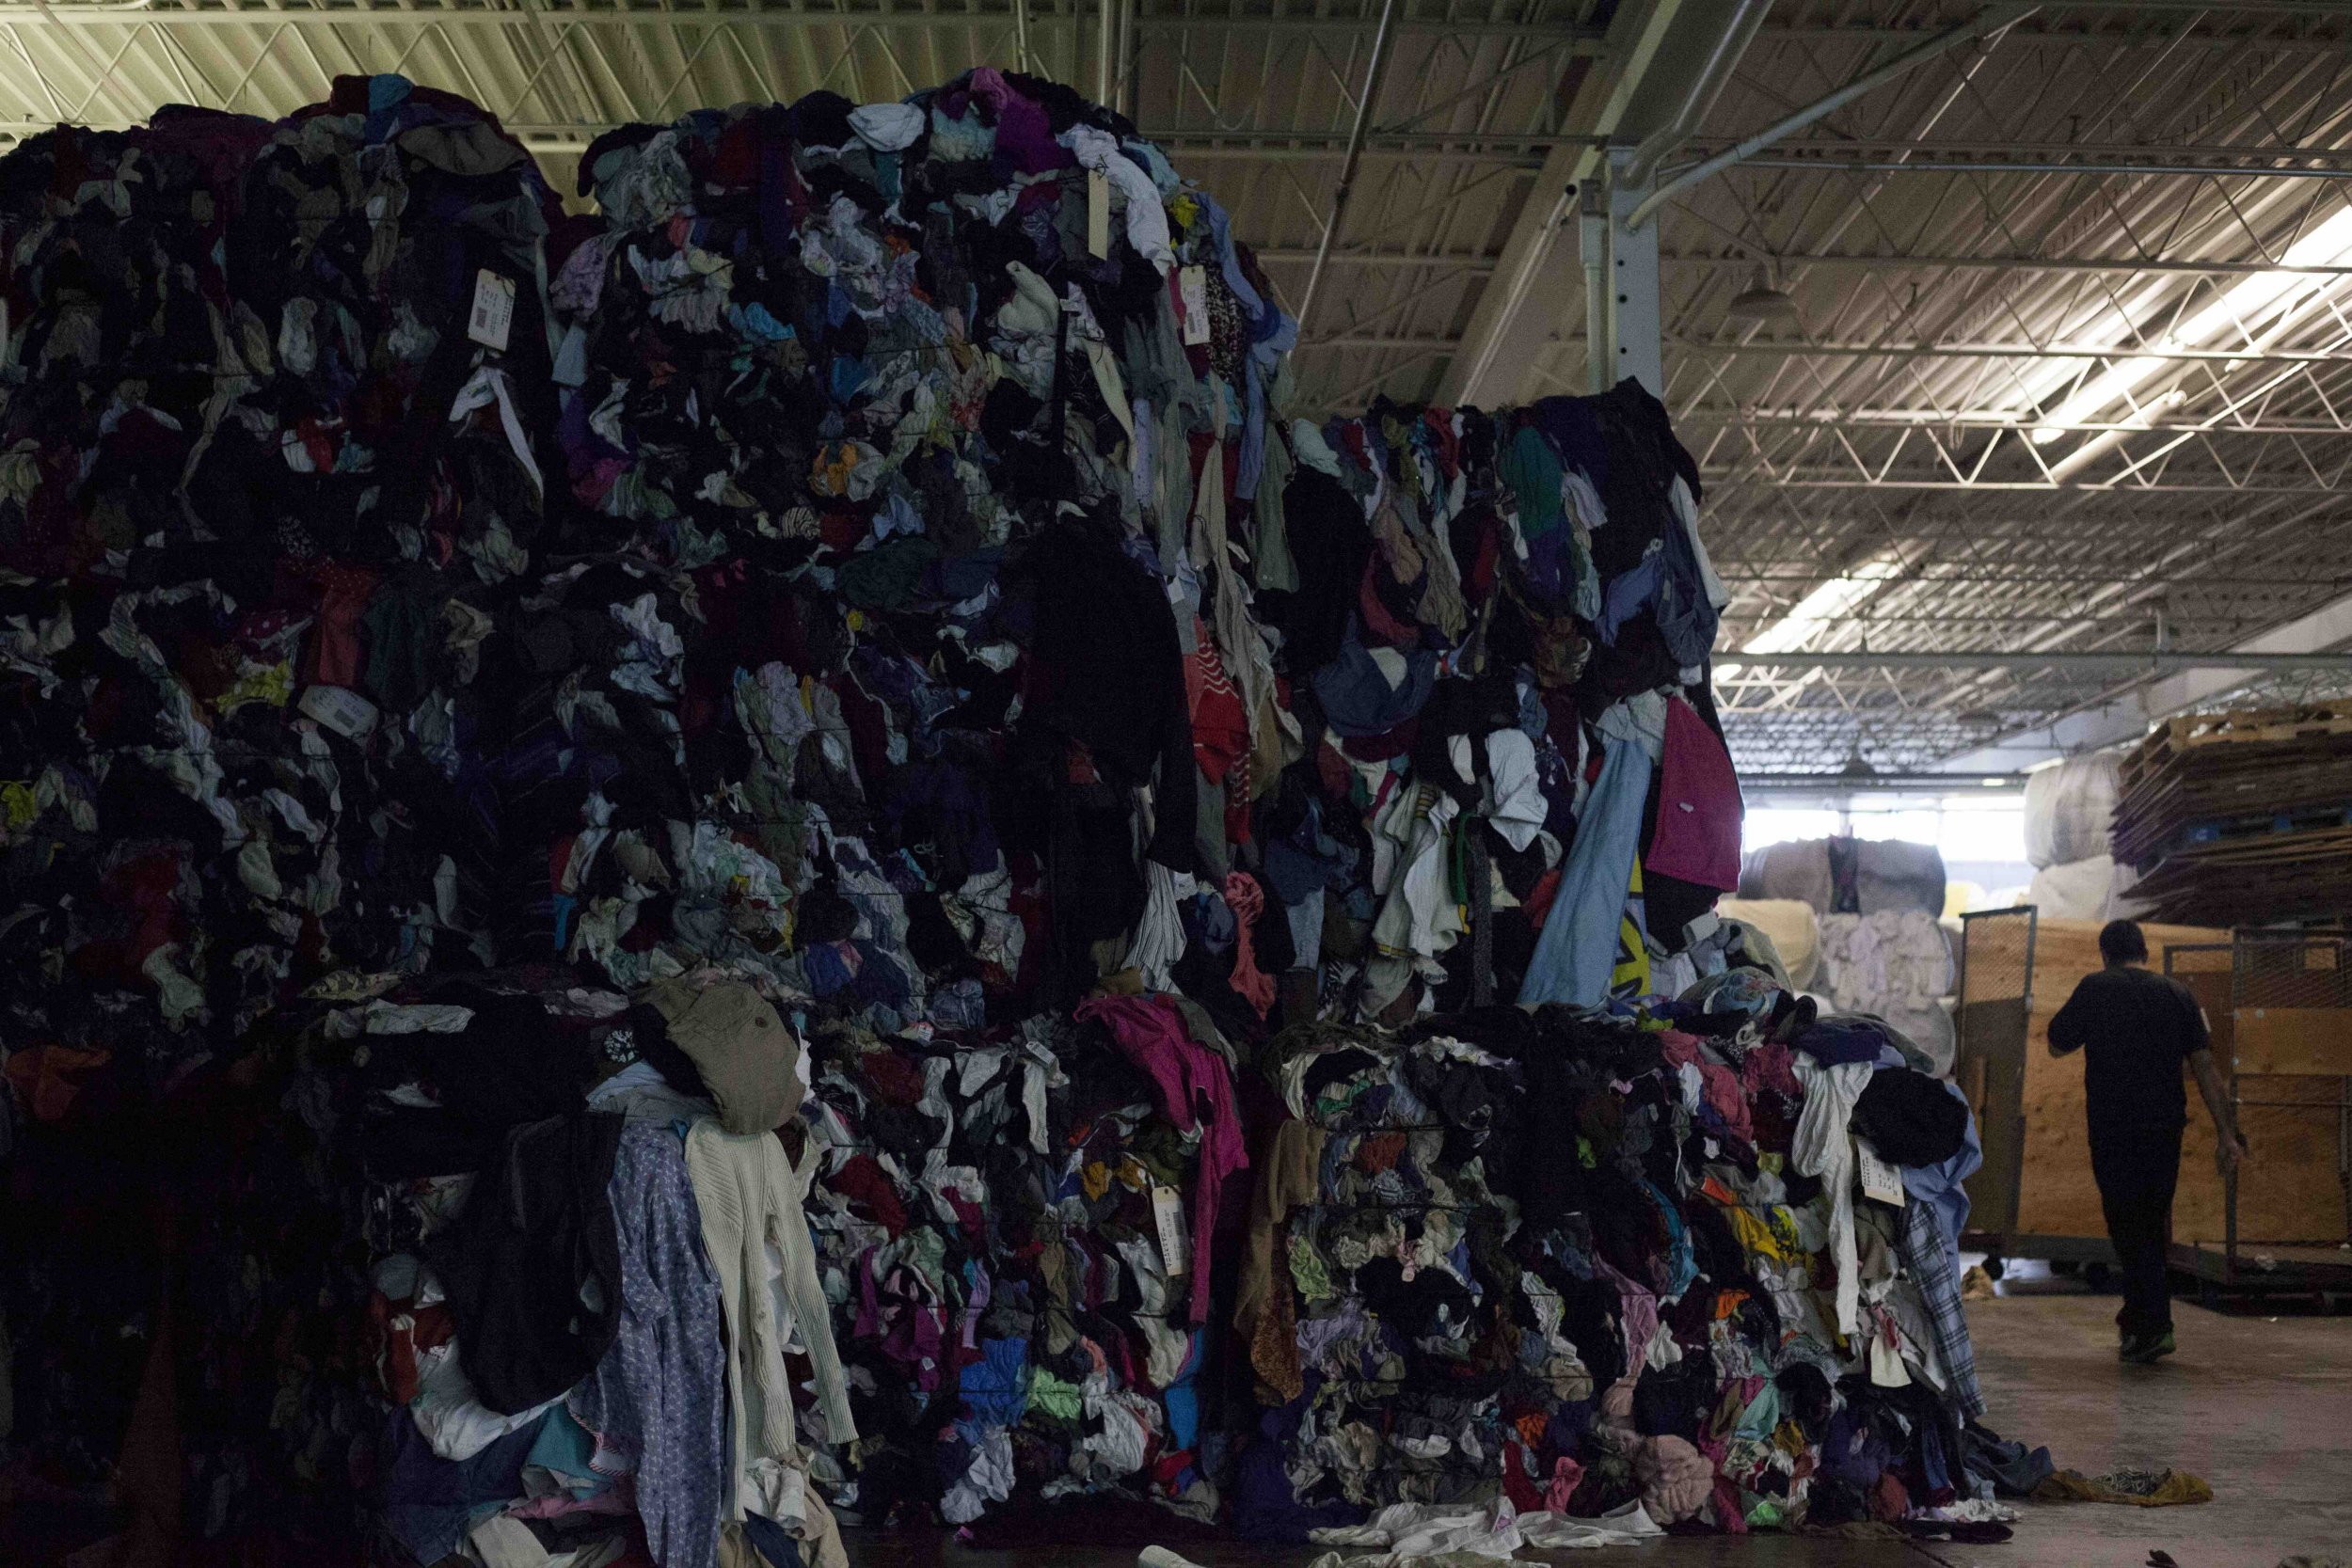 Recycled Clothing: 'Fast Fashion' May Be Creating A Waste Crisis